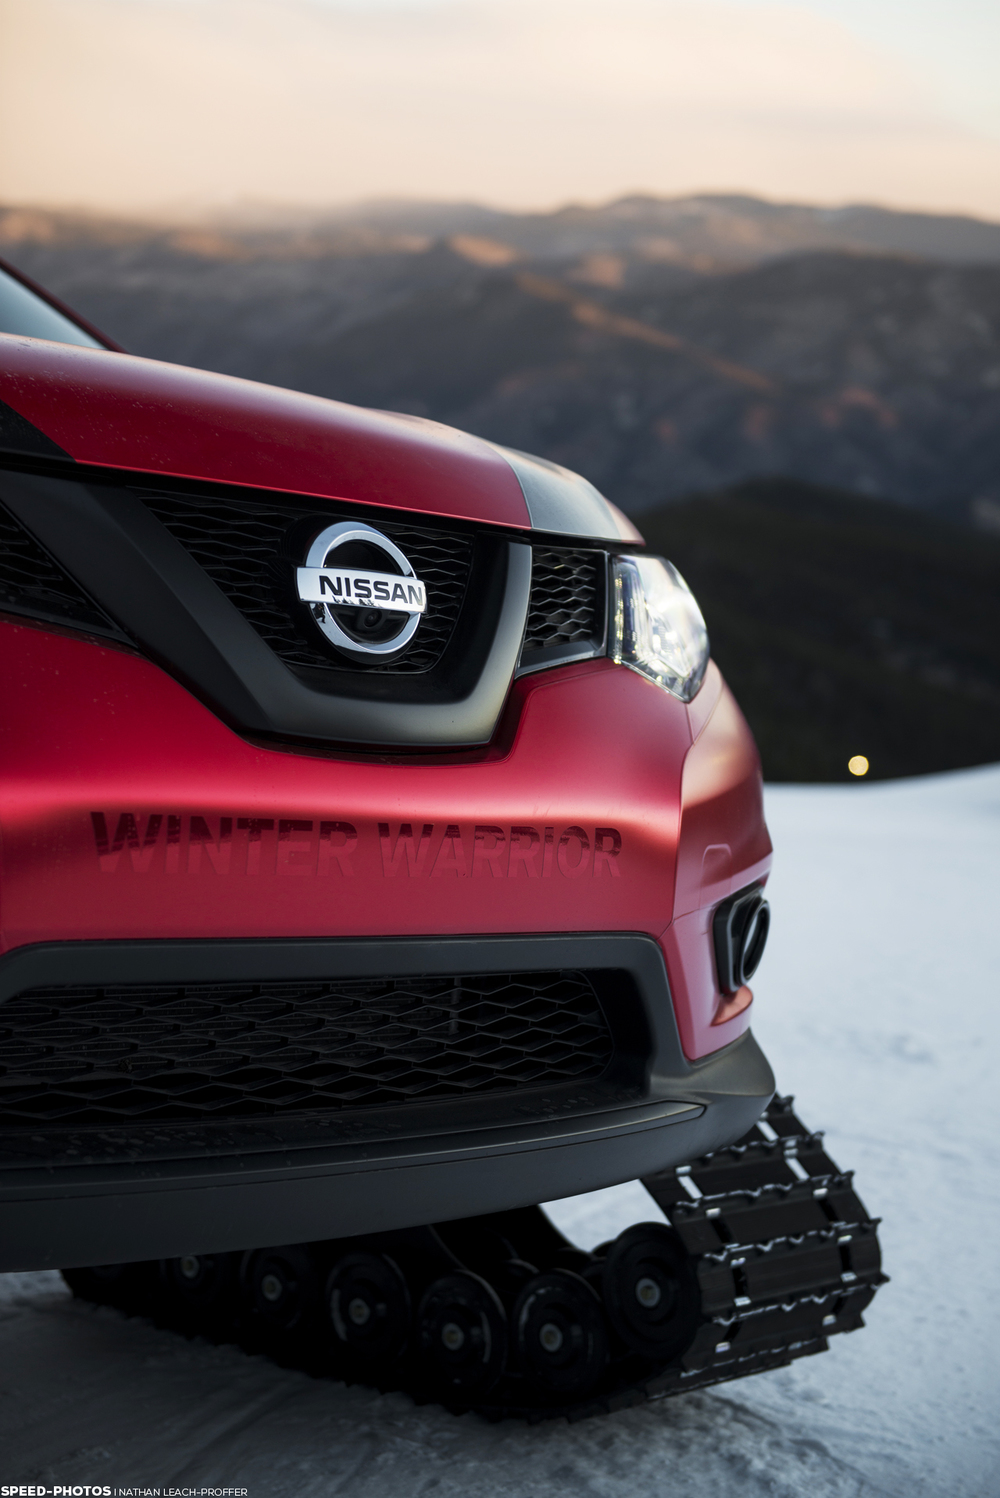 nissanwinterwarrior